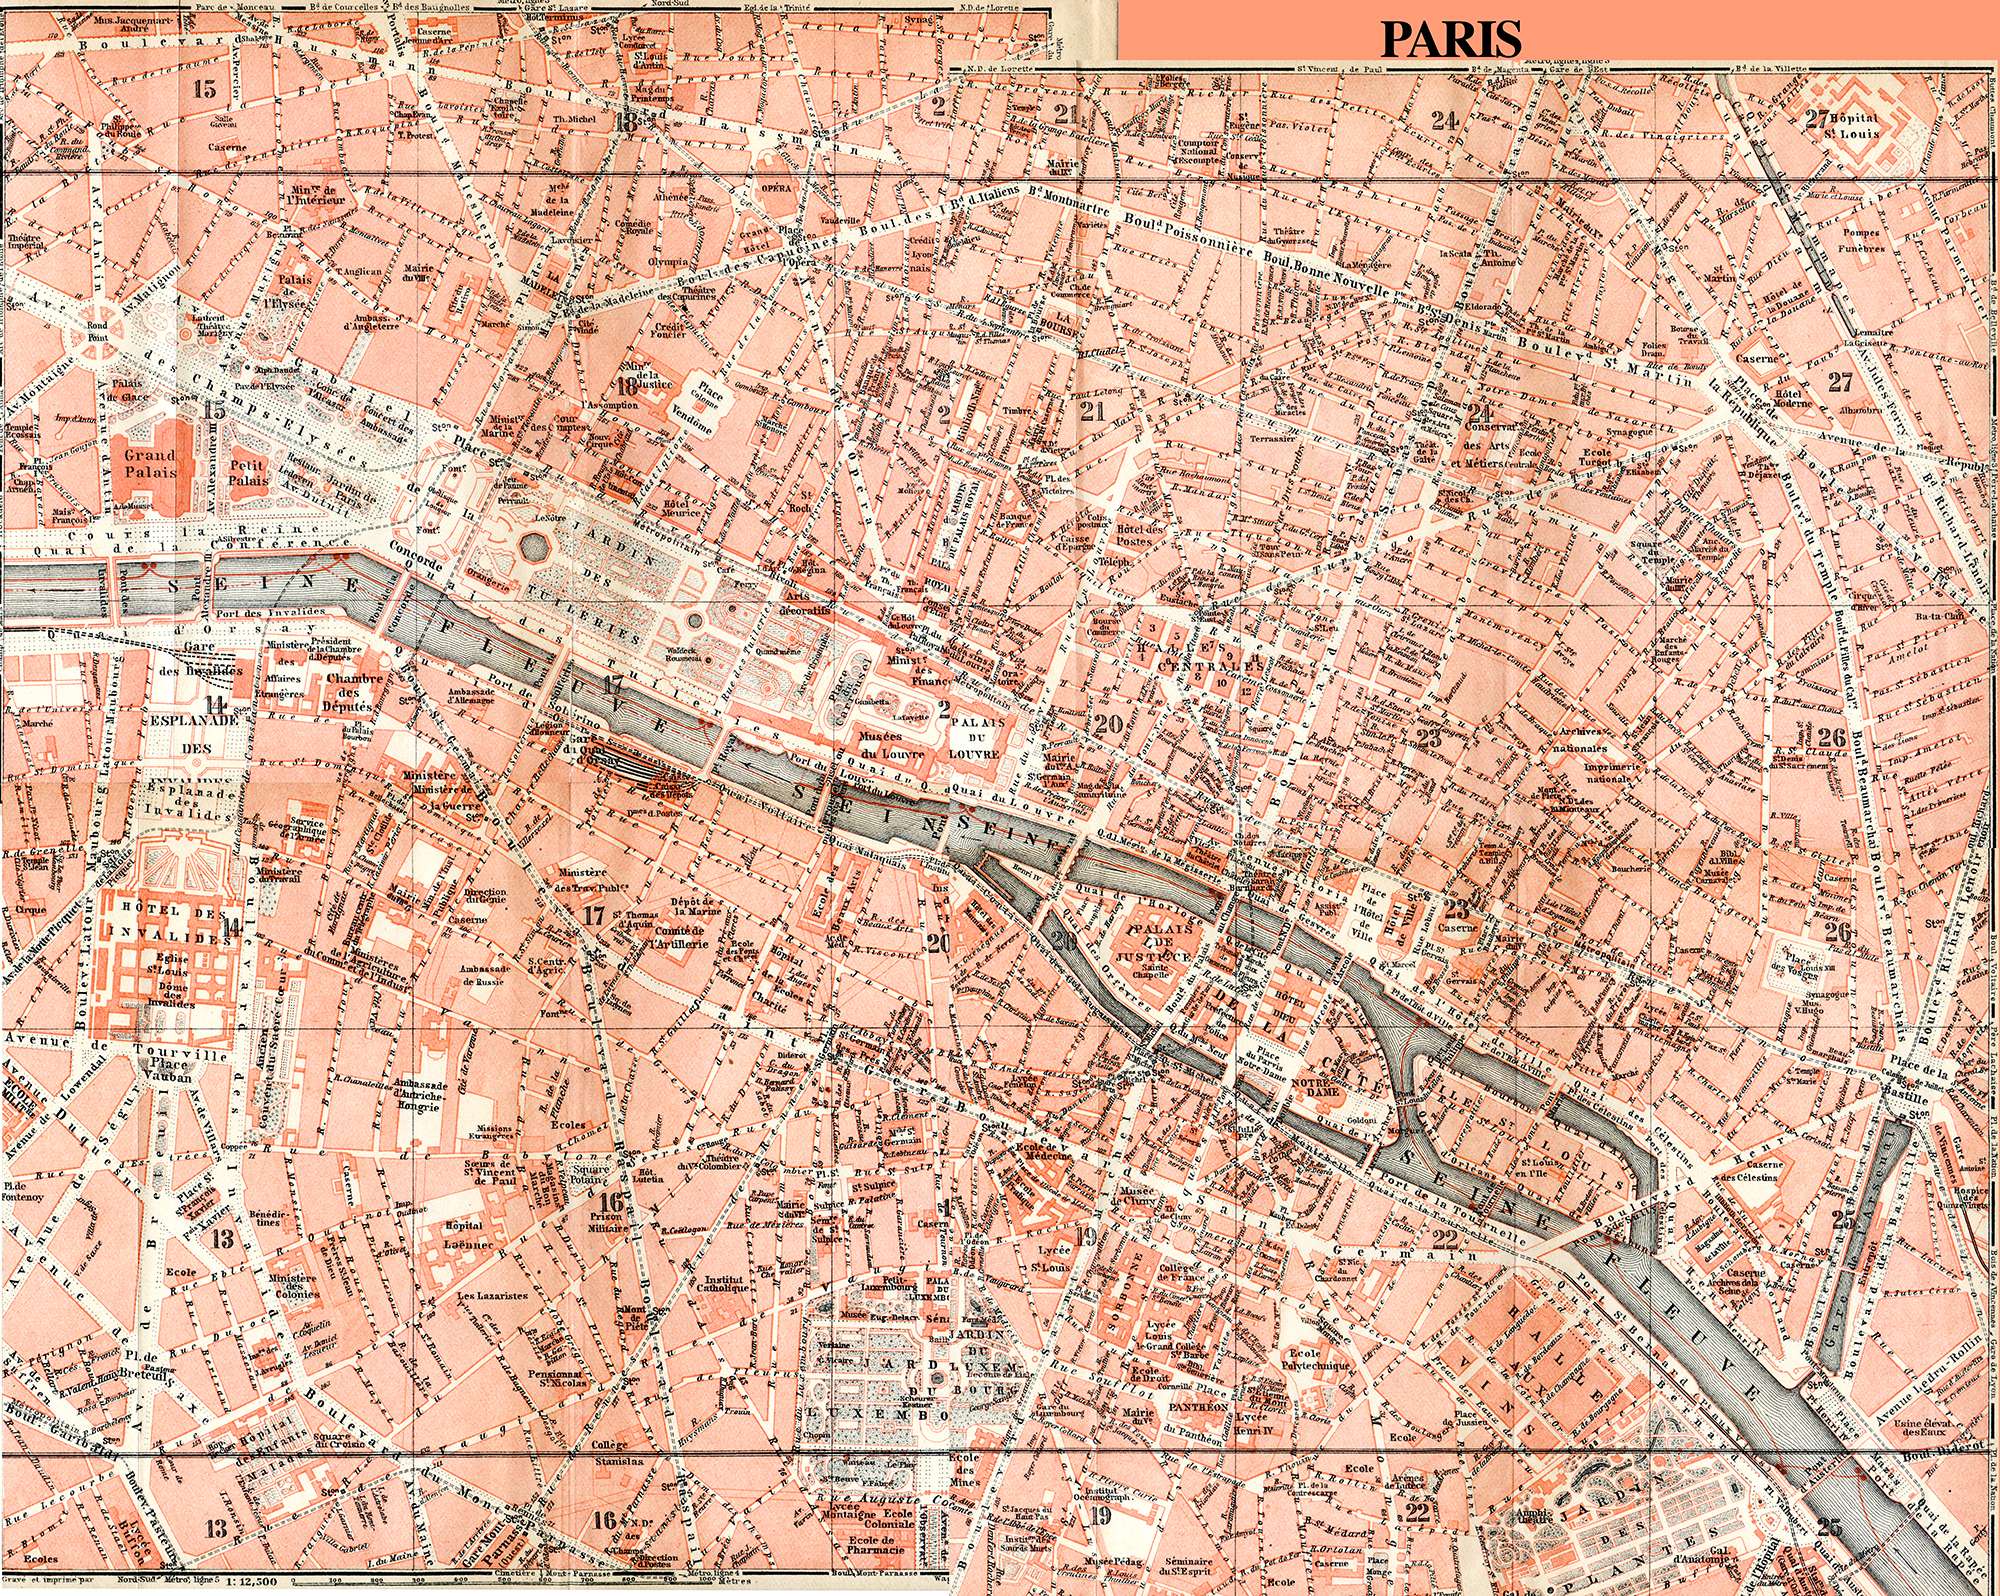 paris france map in public domain free royalty free royalty free